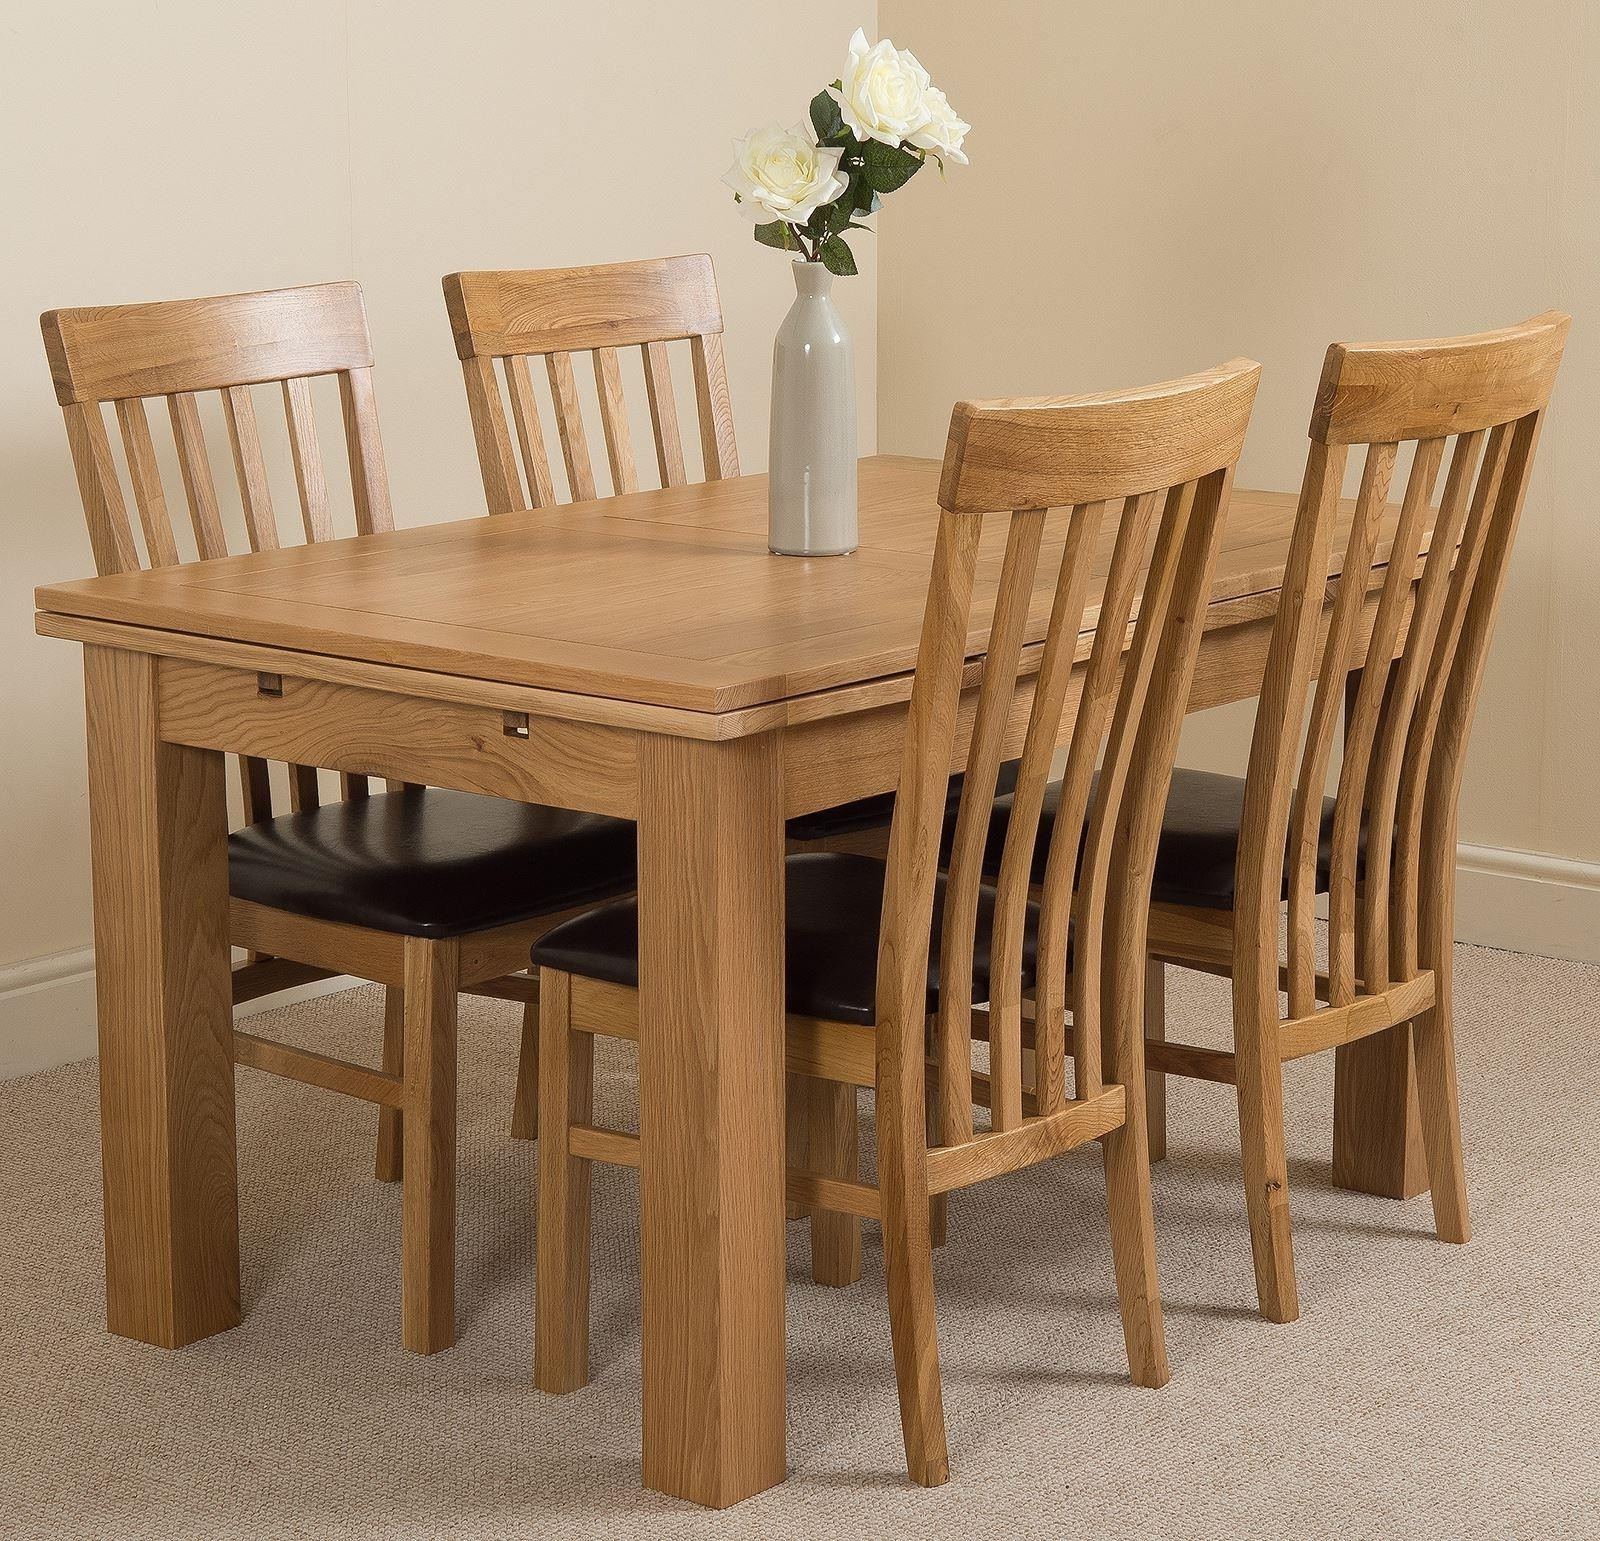 Trendy Oak Dining Tables And 4 Chairs Throughout Richmond Oak Small Dining Set 4 Harvard Chairs (View 6 of 25)